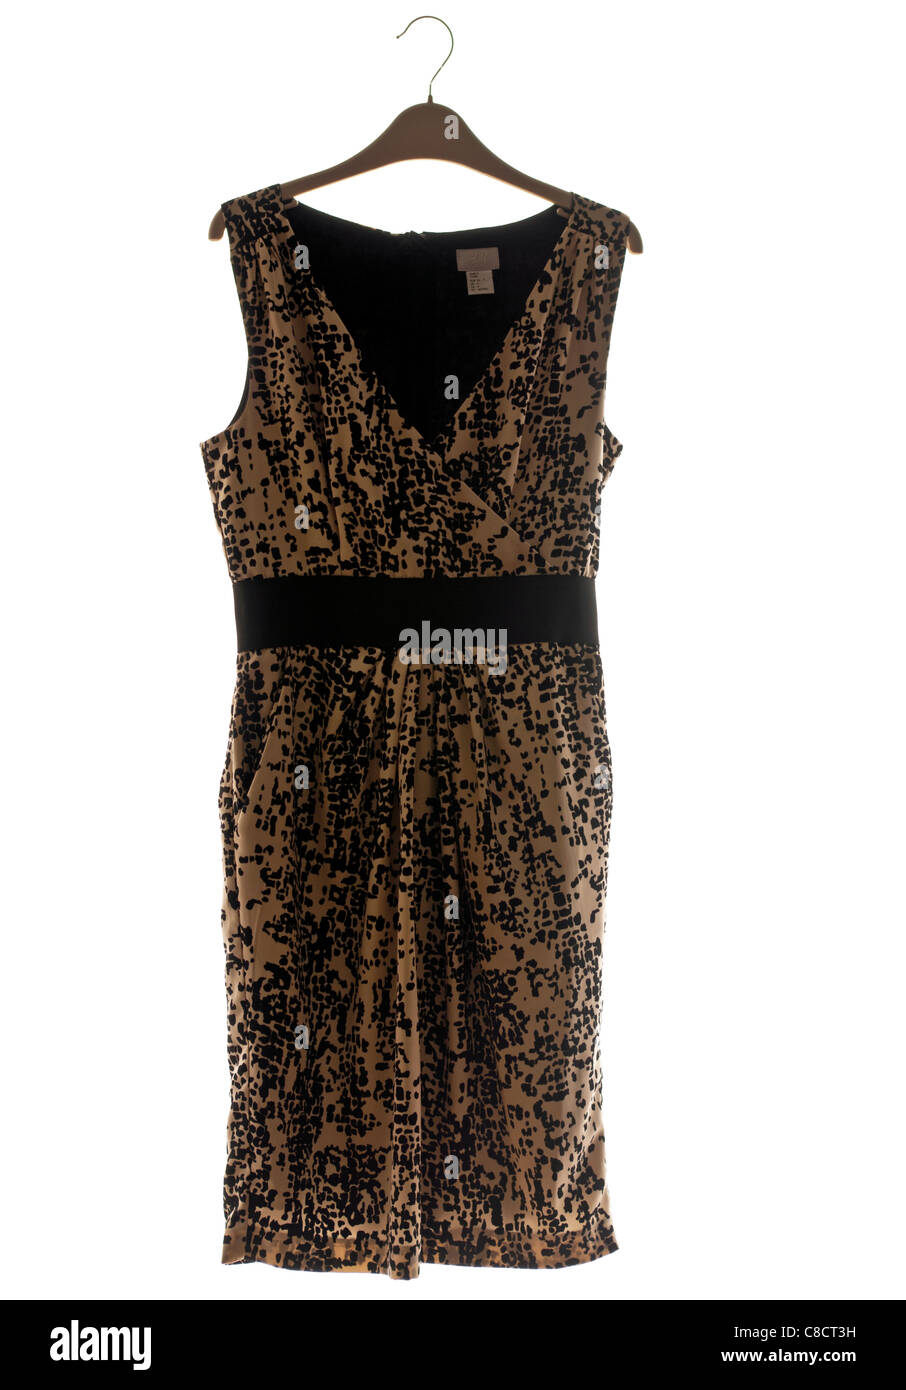 Womens womens ladies Black and Tan Belted Sleeveless Dress On A Coat Hanger - Stock Image